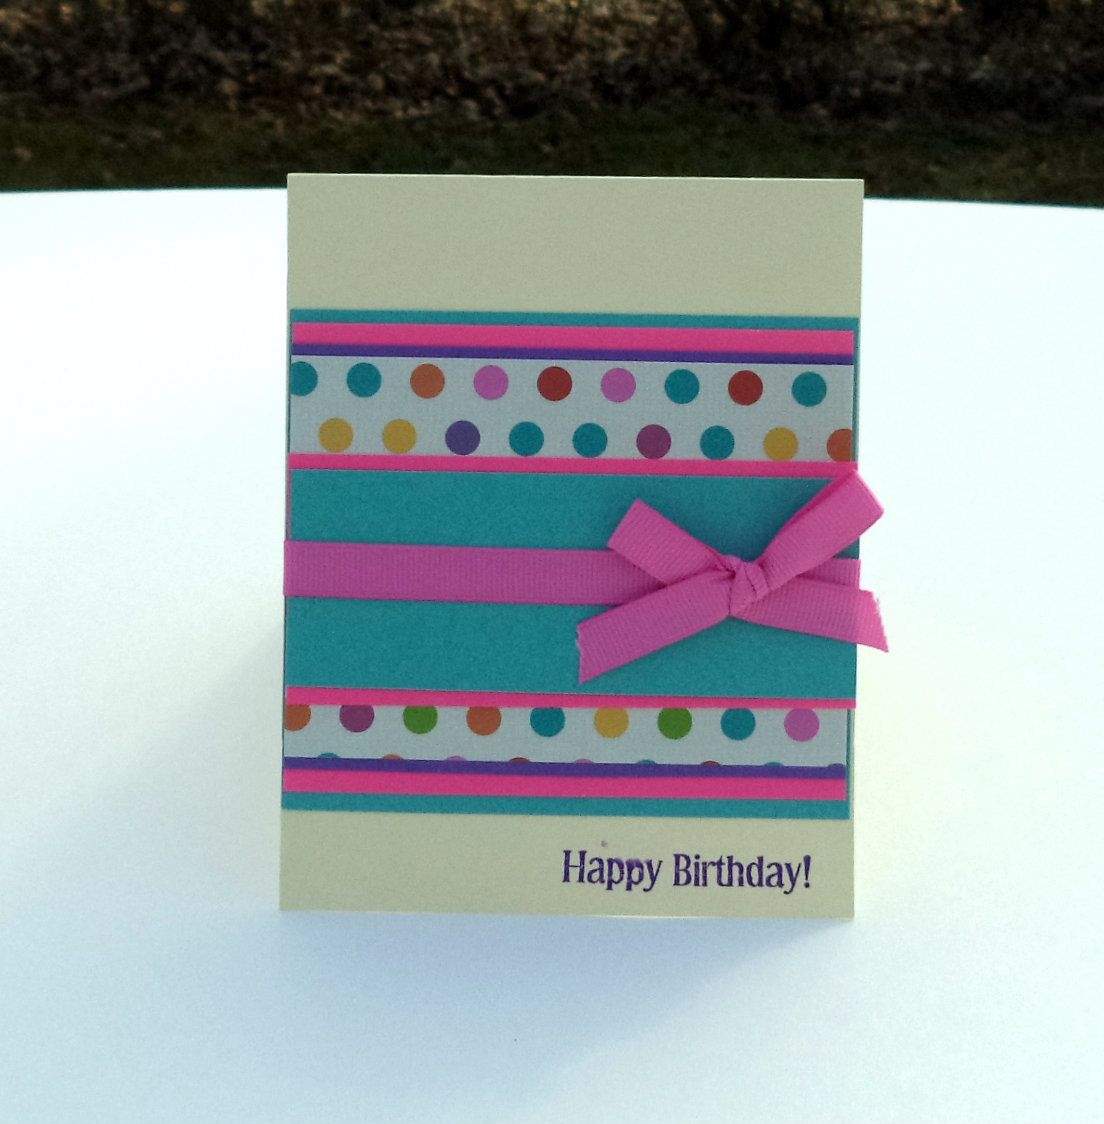 Birthday Card, Card for Adults, Polka Dot Birthday Card, Happy Birthday Card, Handmade Greeting Card by Paperika on Etsy